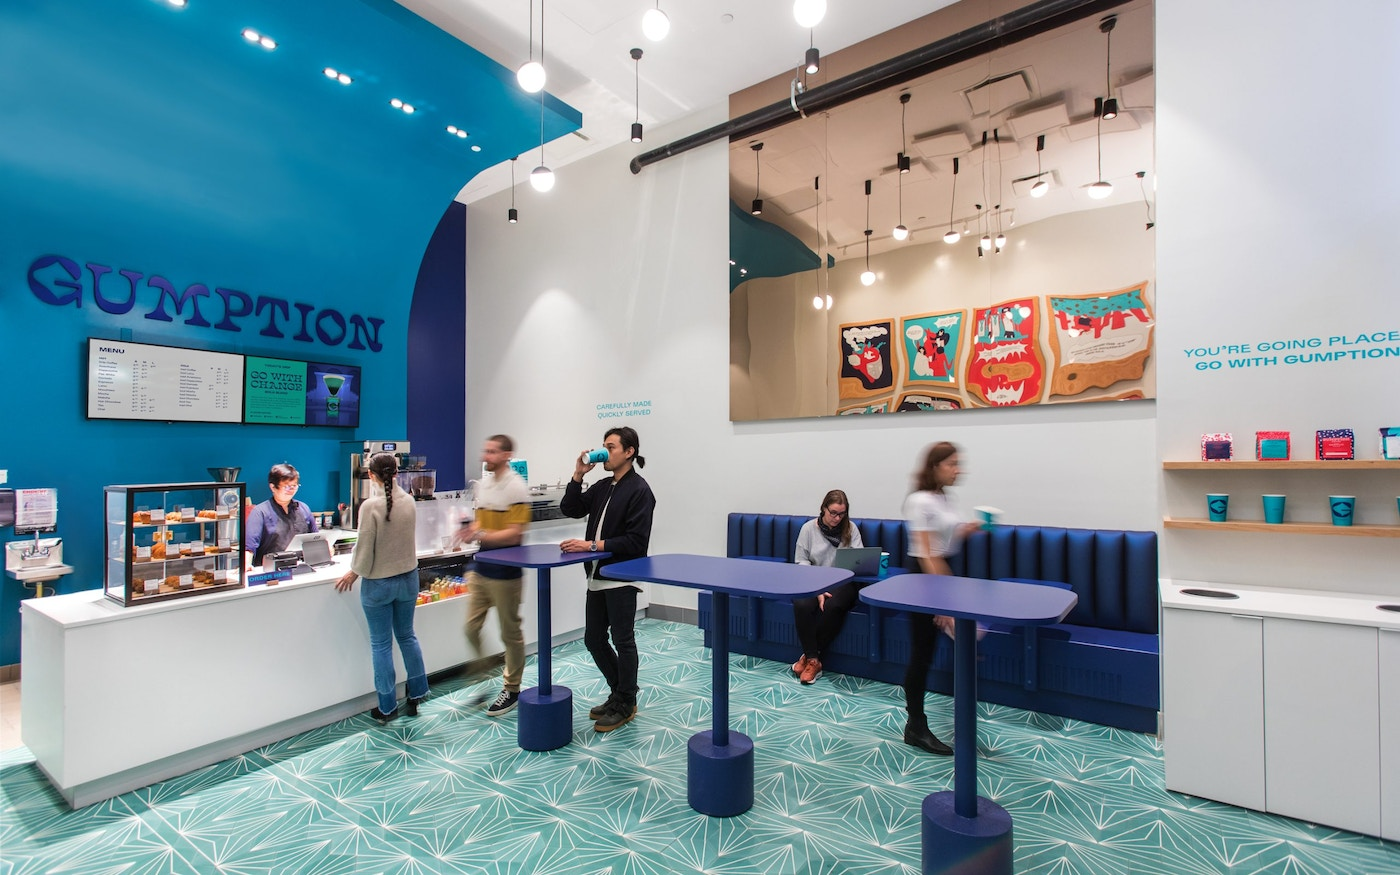 New Gumption Coffee in-store experience